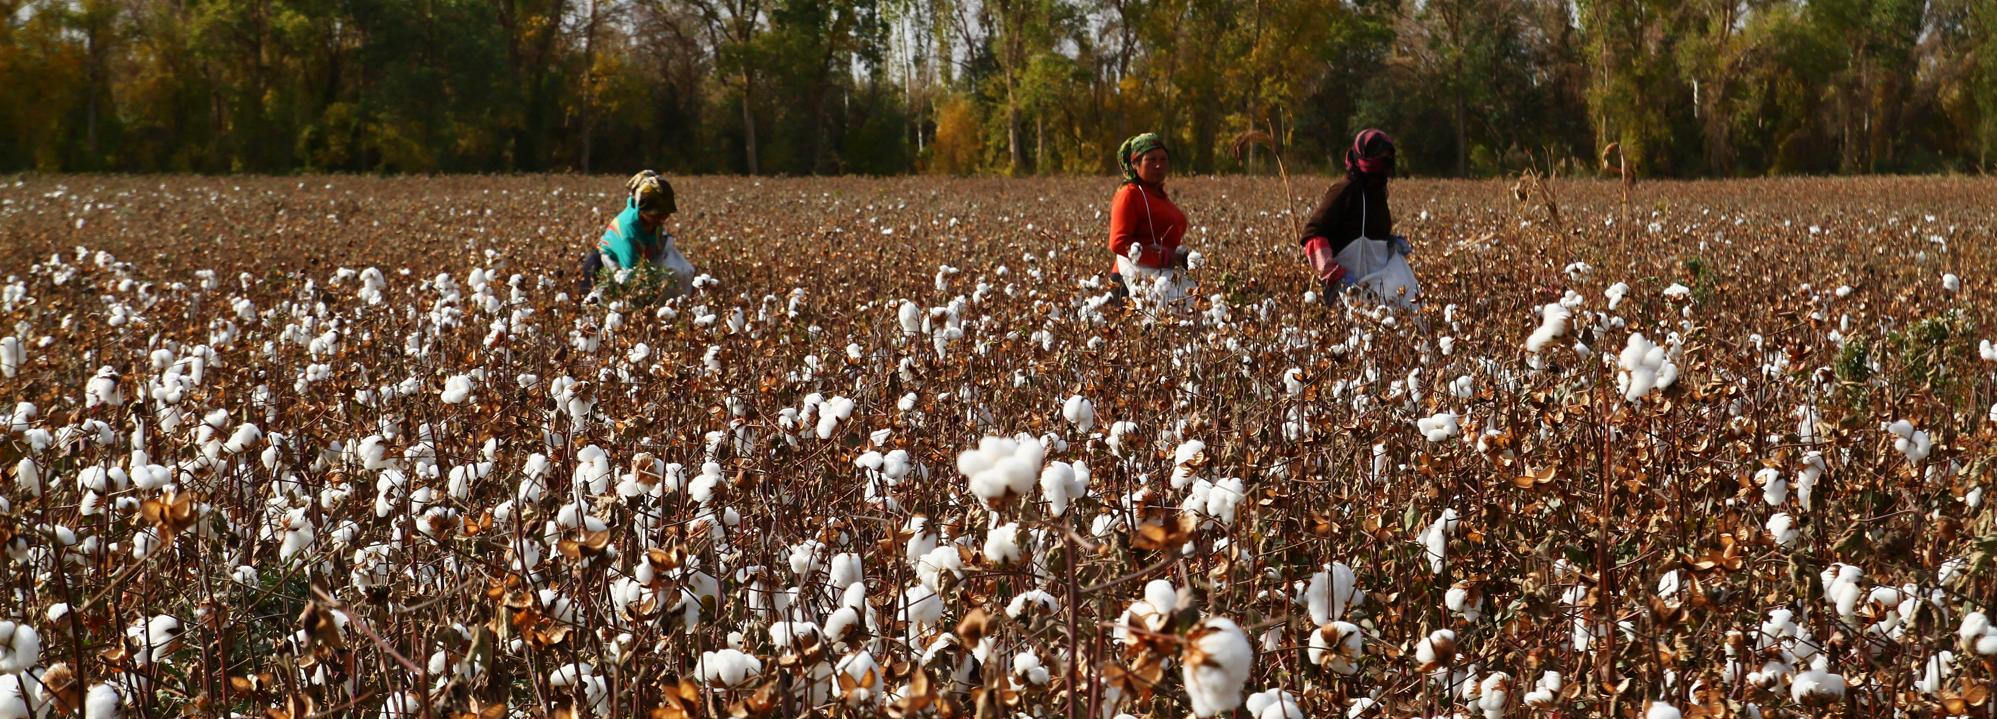 Harvesting cotton credit Better Cotton Initiative